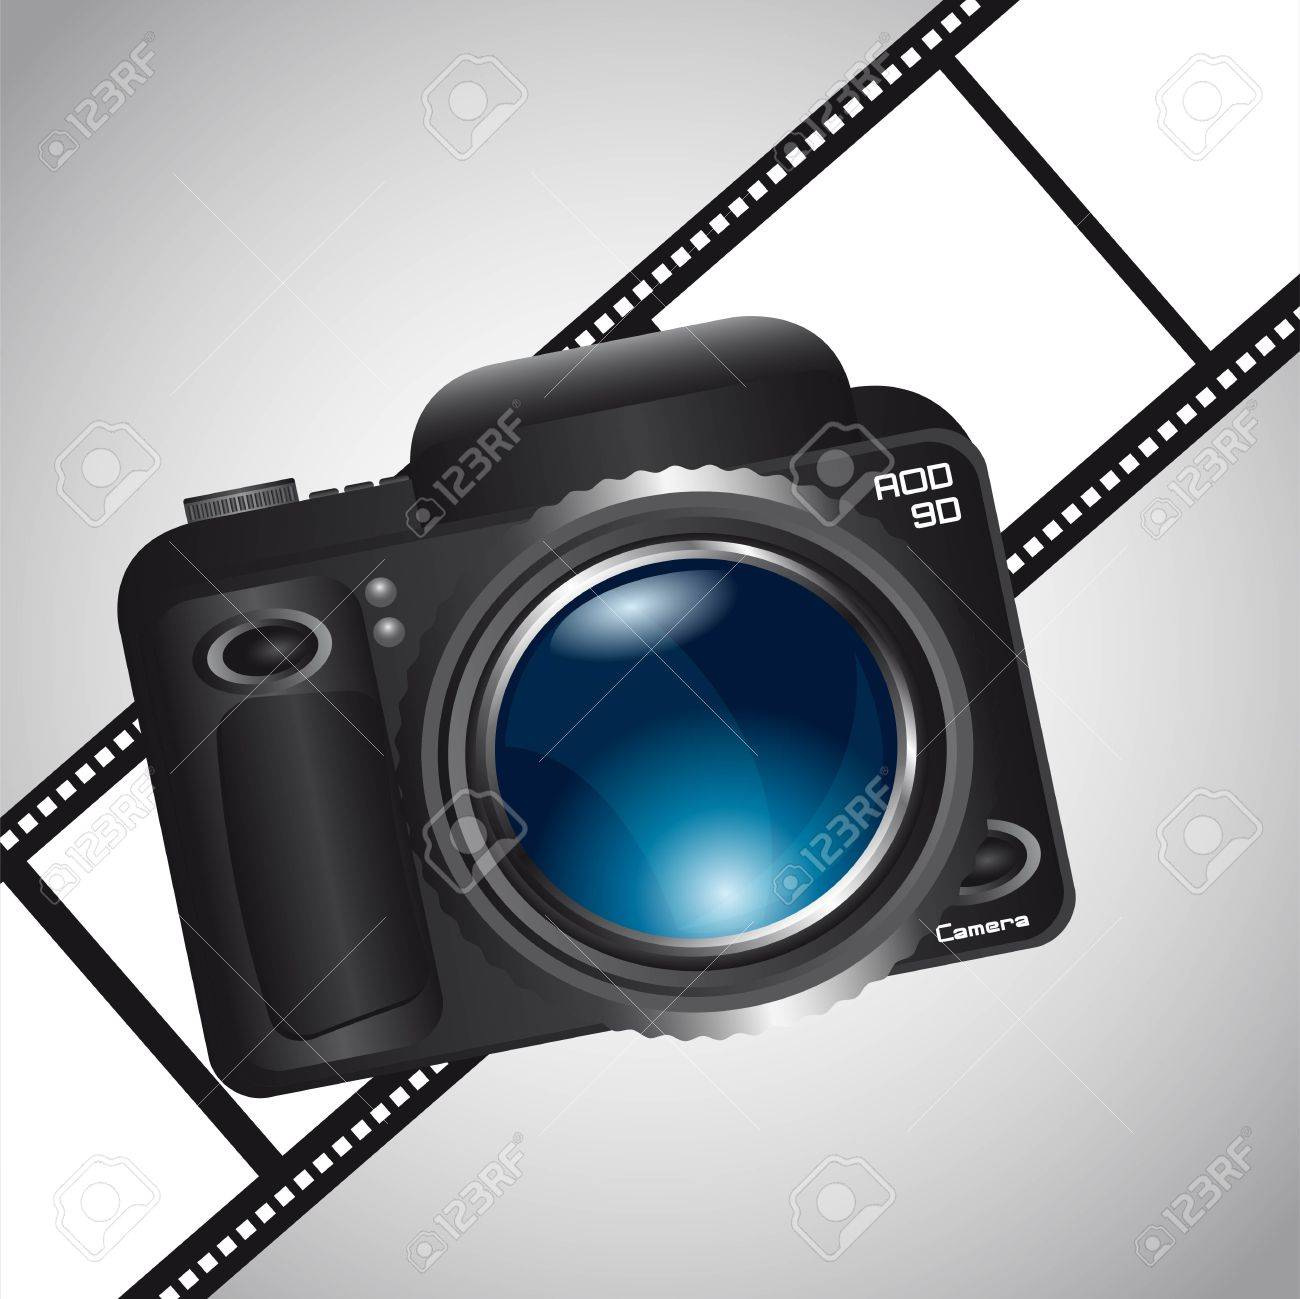 camera over film stripe over gray background. vector illustration Stock Vector - 13755209